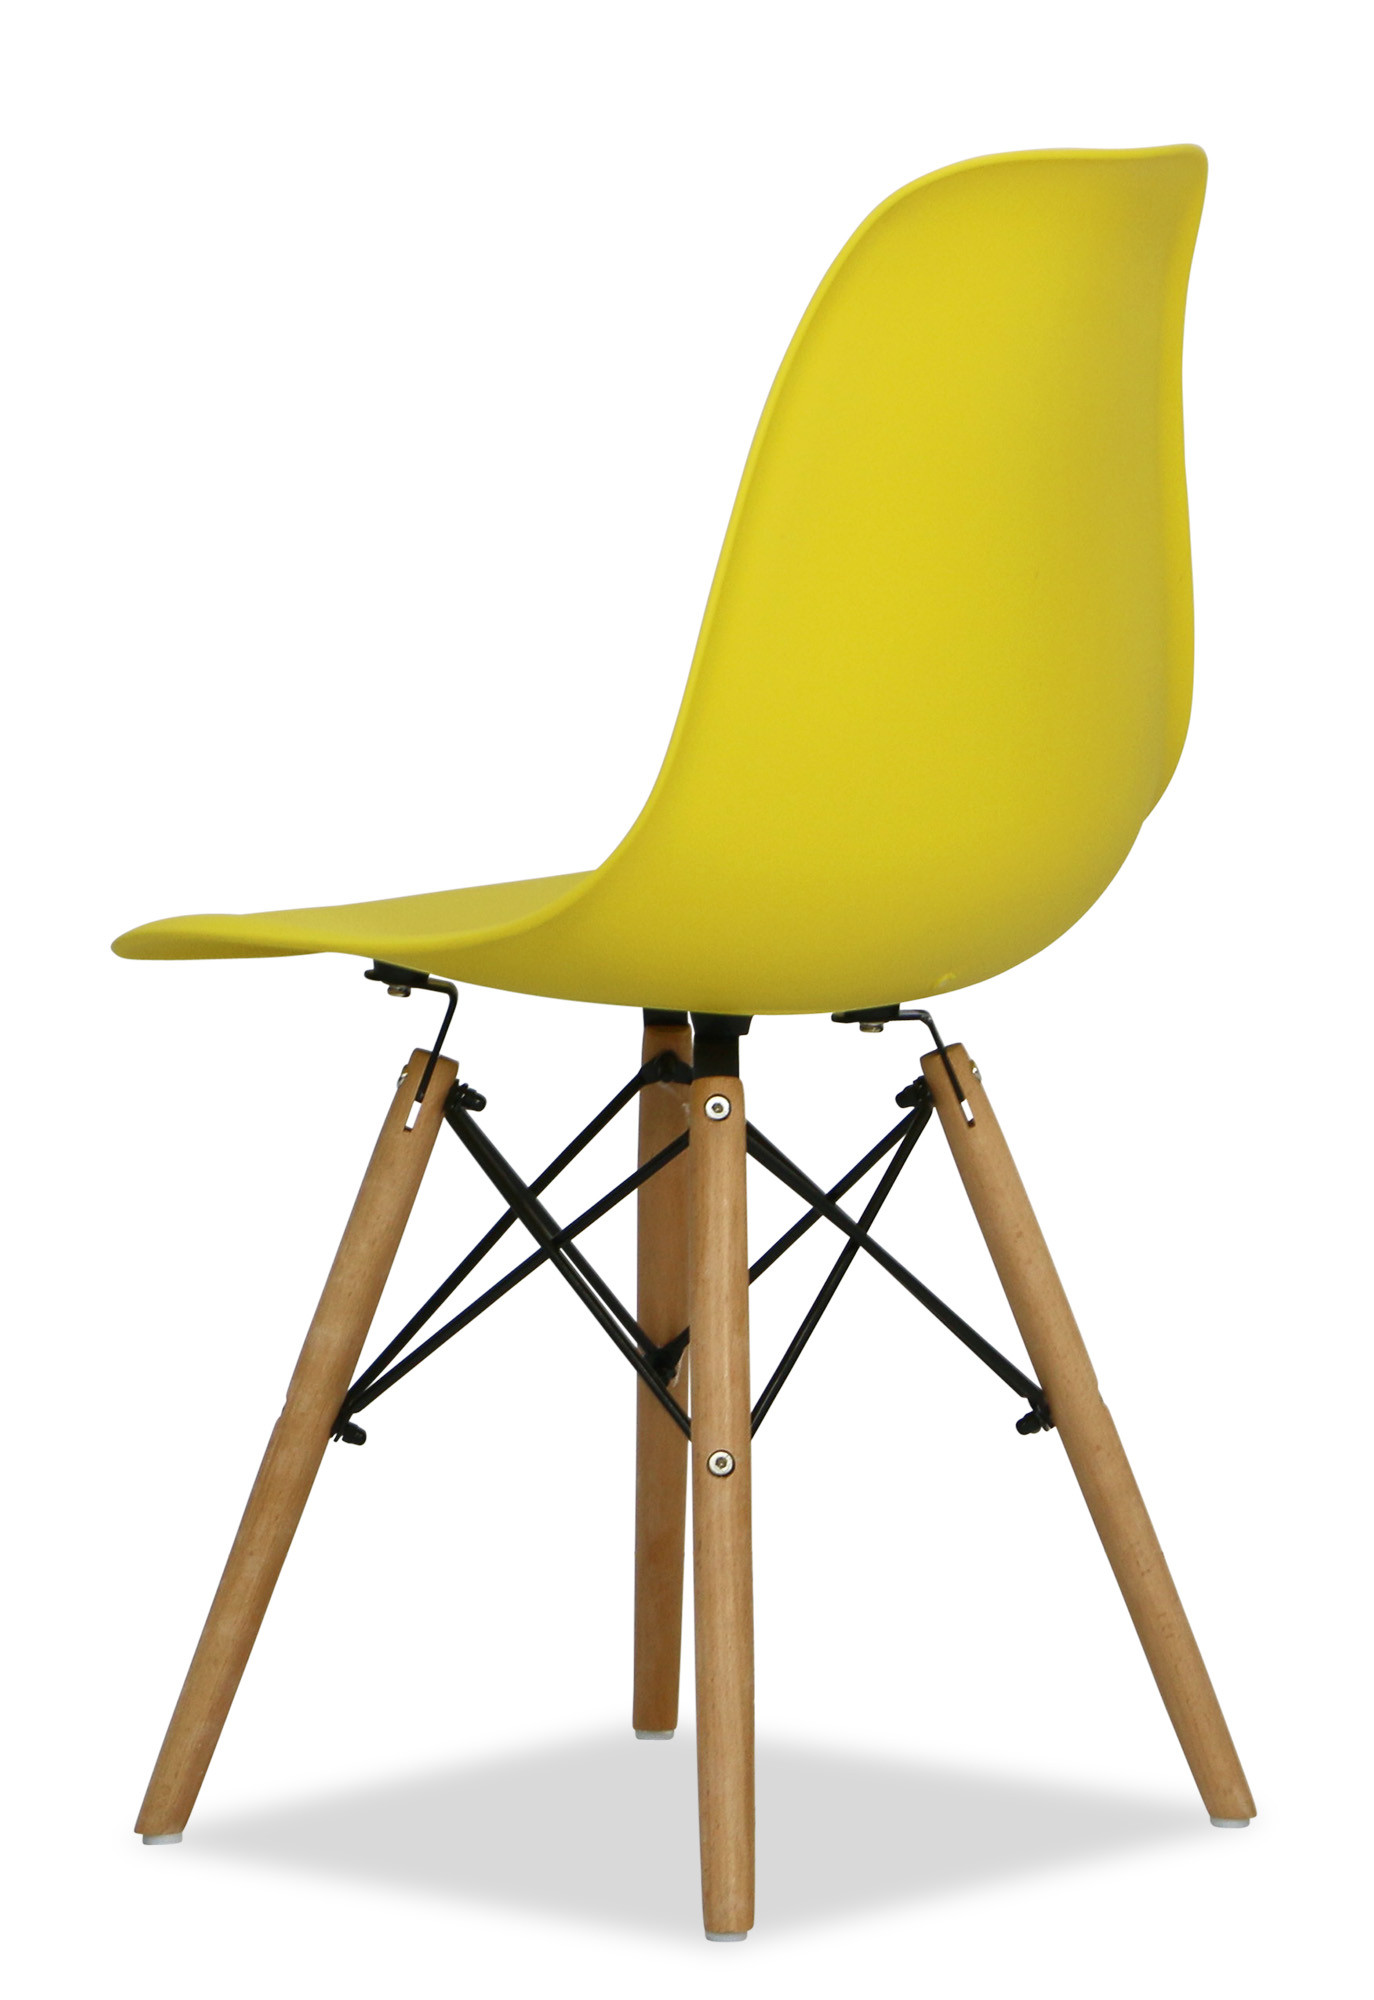 Eames yellow replica designer chair dining room for Designer furniture replica malaysia